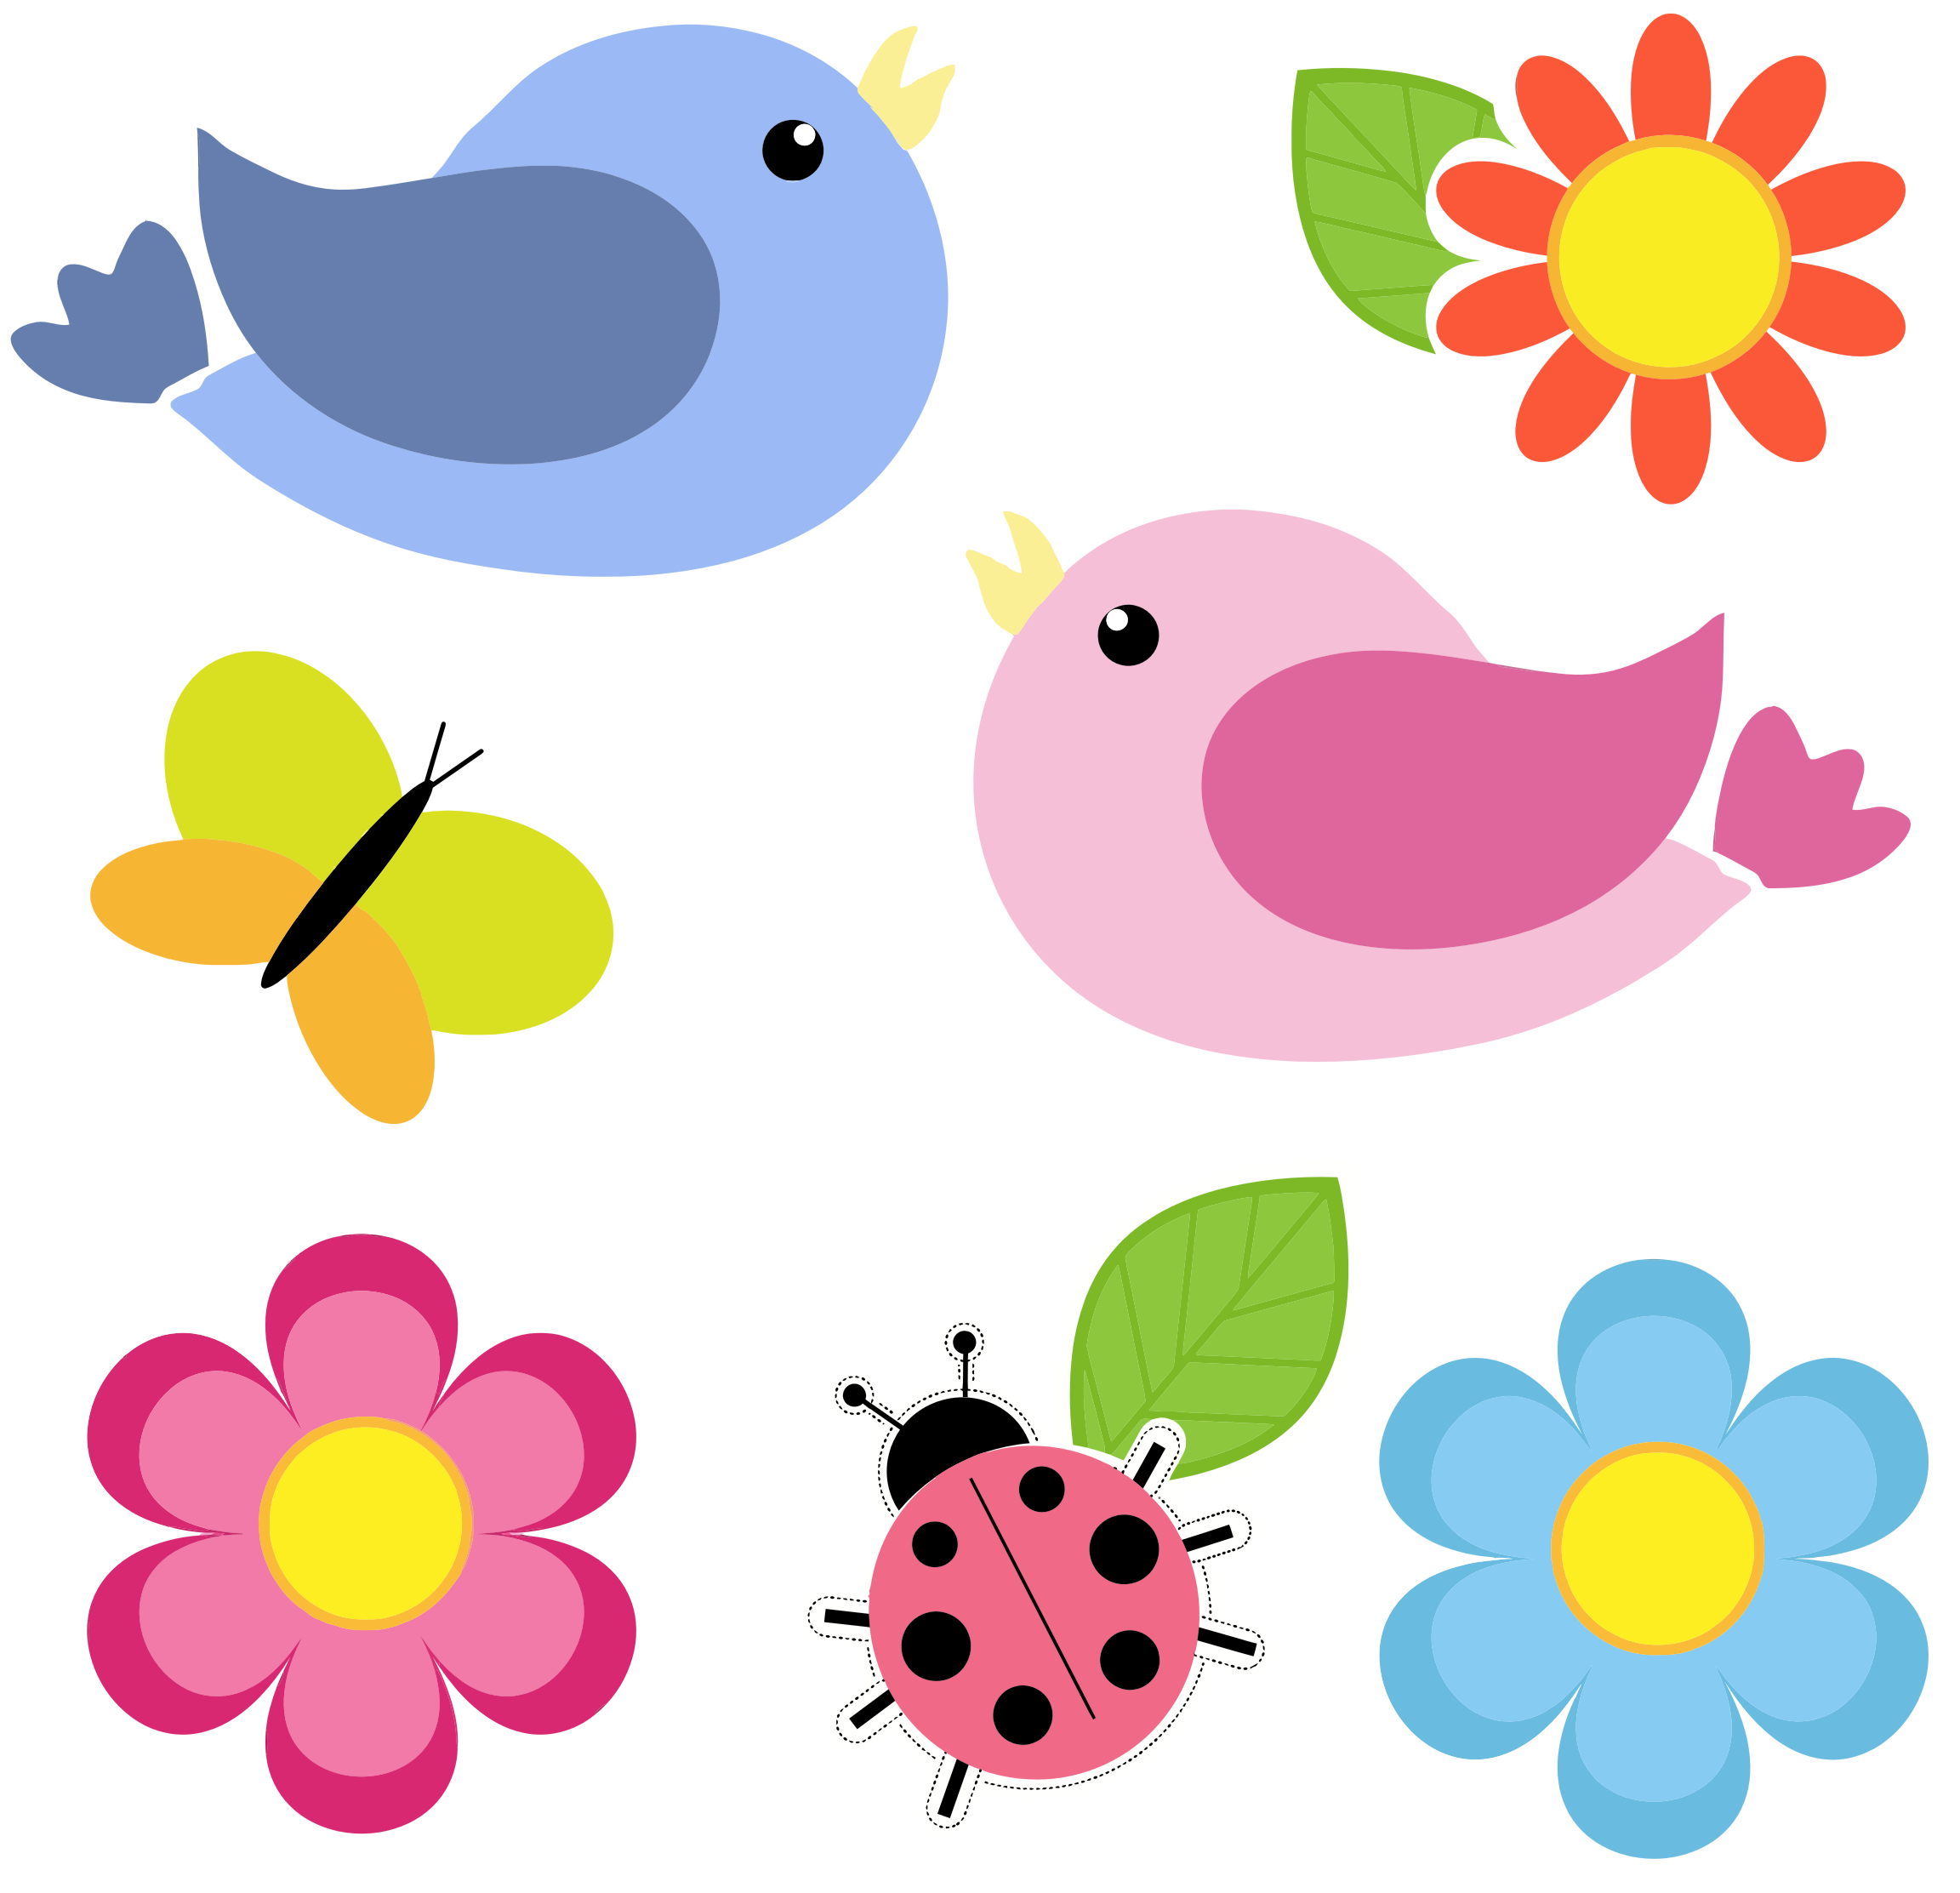 Birds clipart flower. Butterfly ladybug and flowers